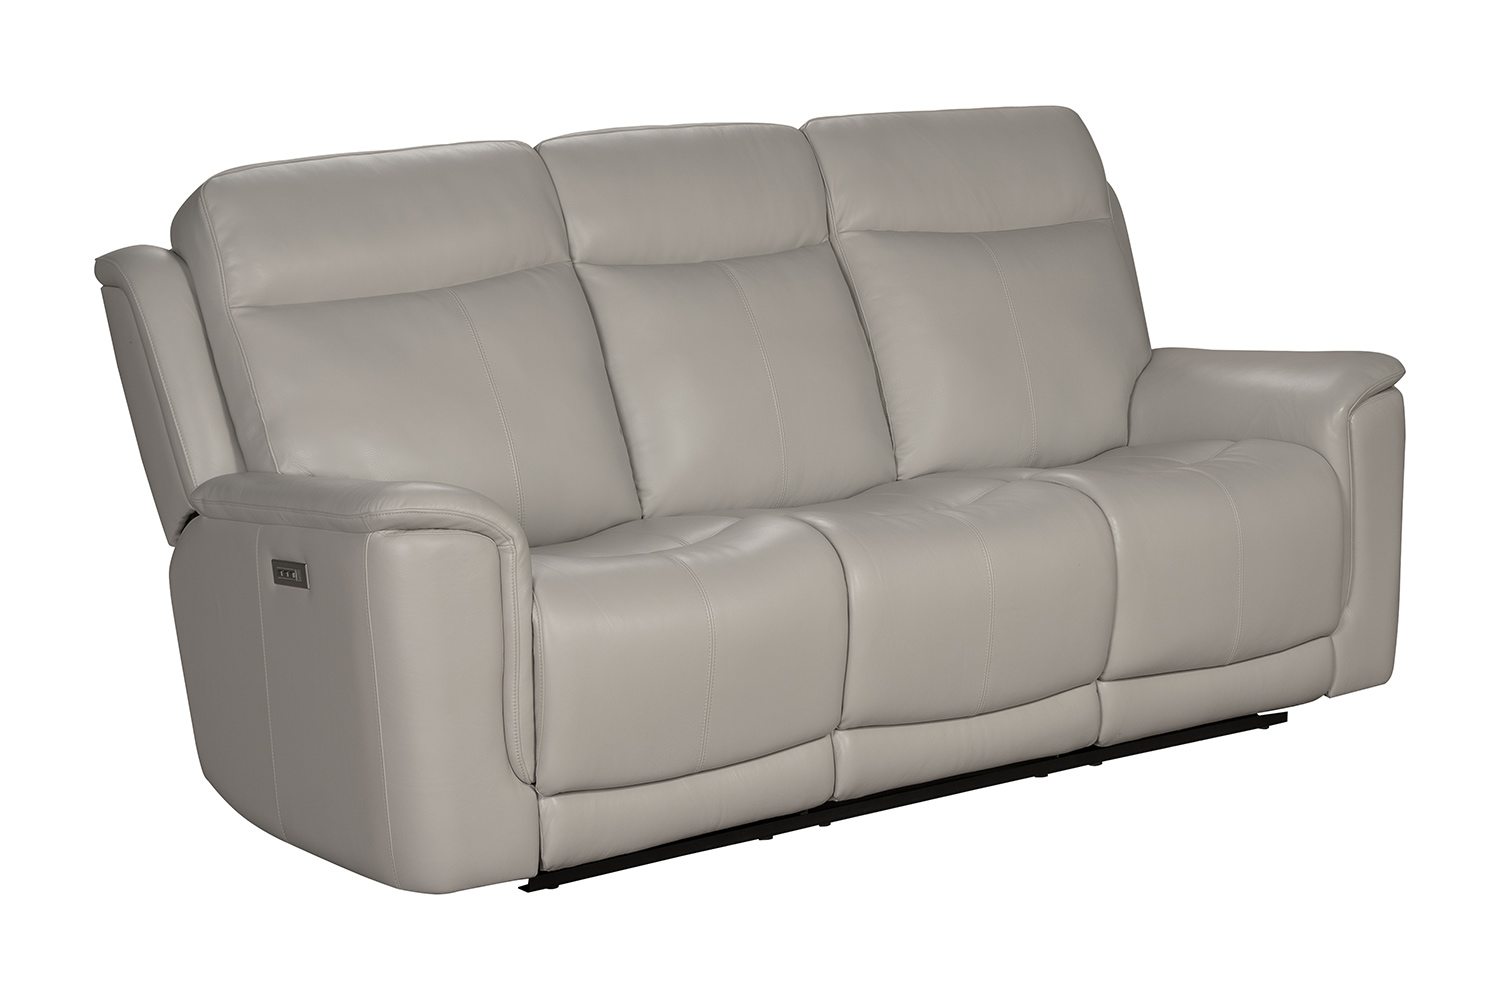 Barcalounger Burbank Power Reclining Sofa with Power Head Rests and Lumbar - Laurel Cream/Leather match